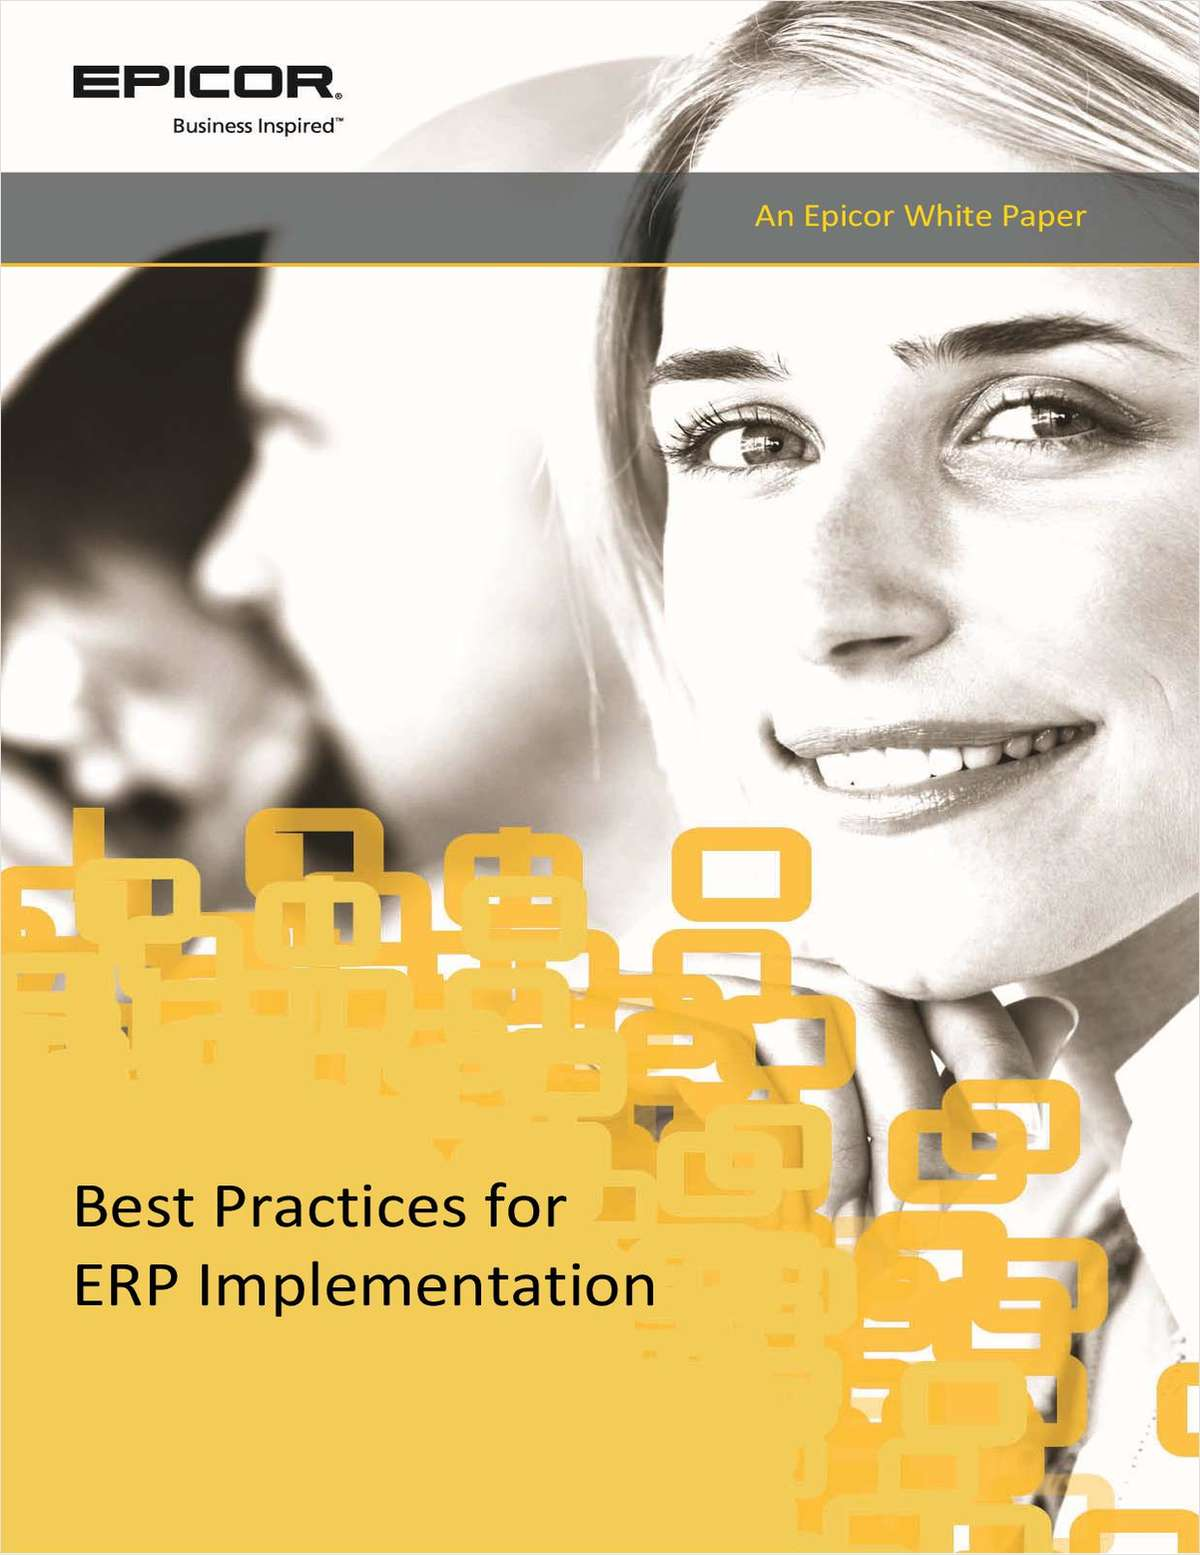 Best Practices for ERP Implementation